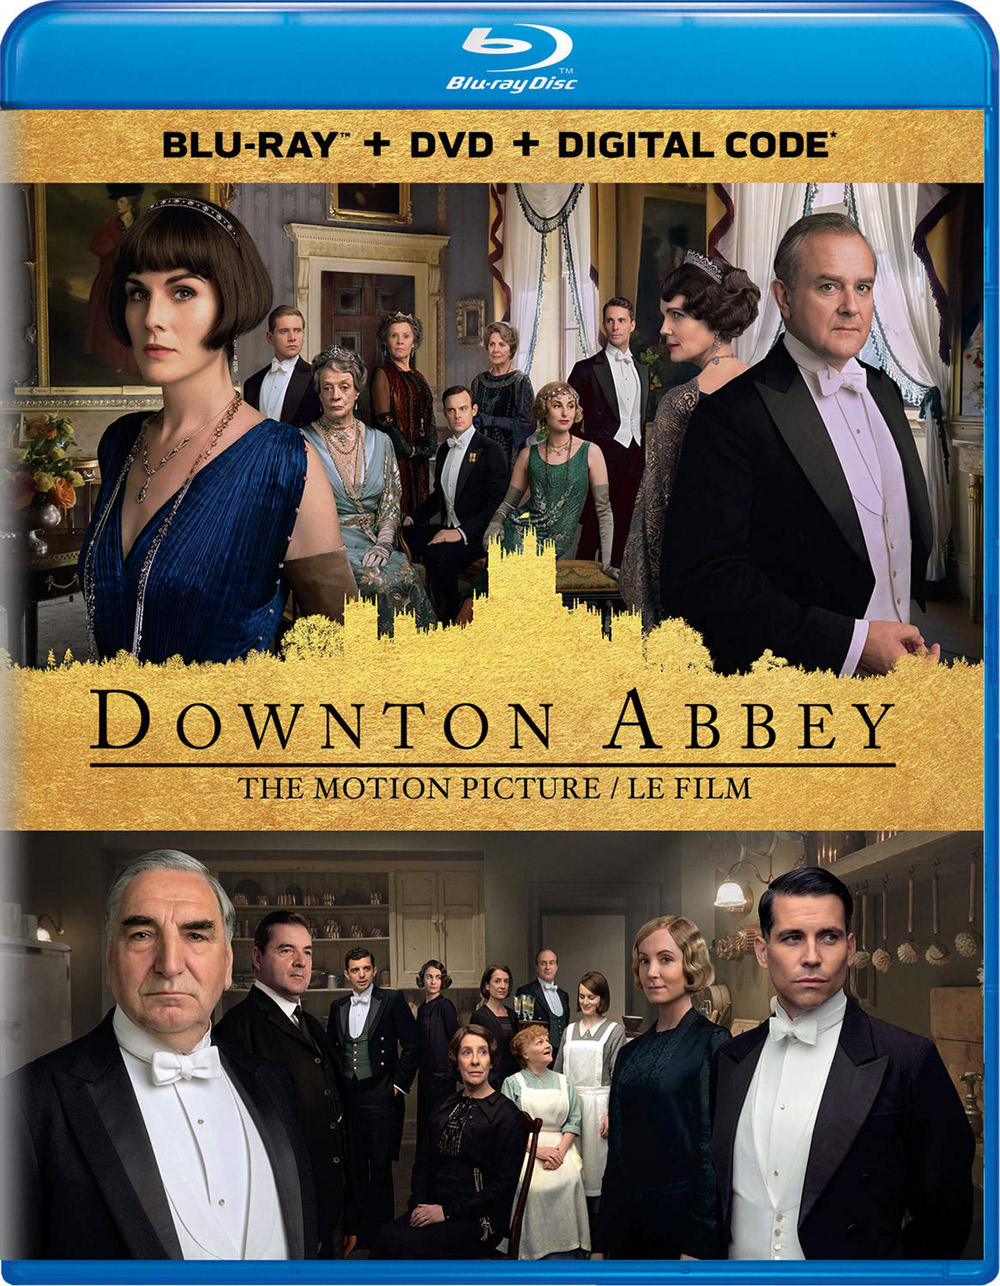 Downton Abbey available on Blu-ray and DVD